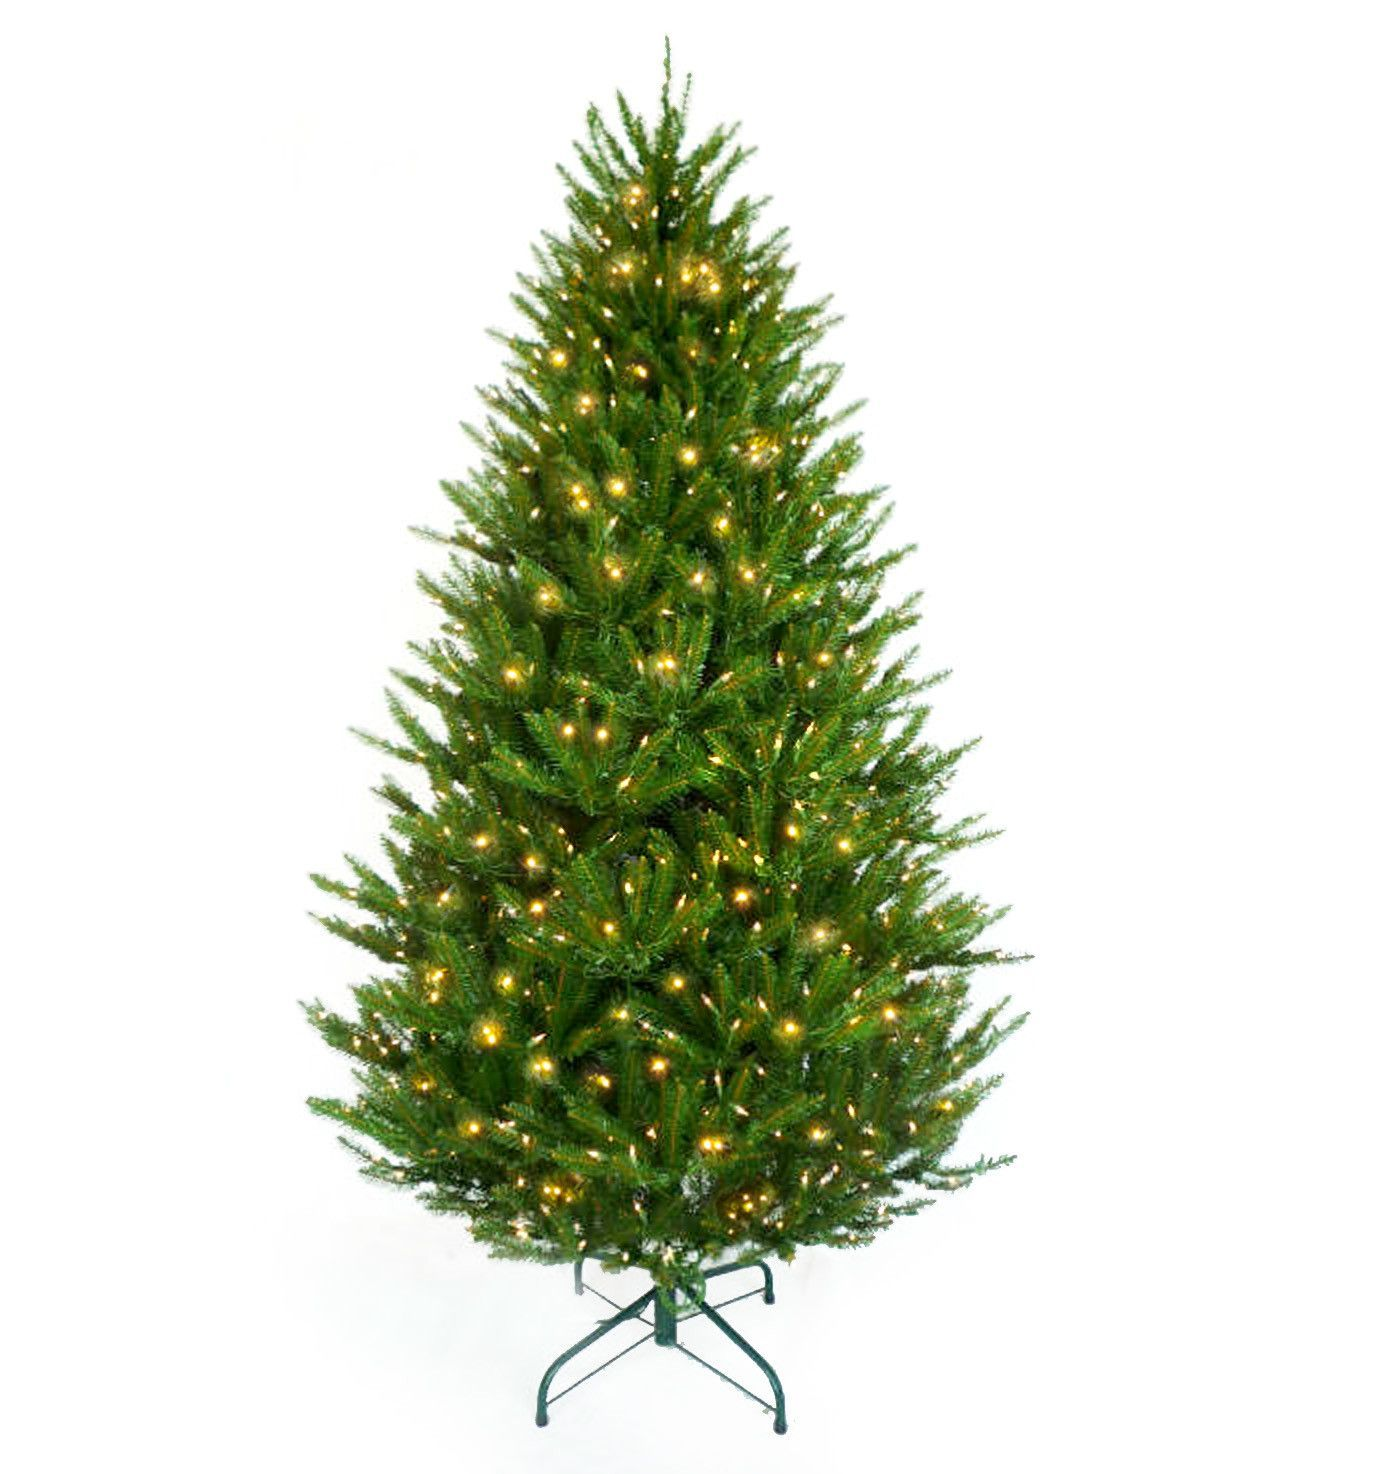 Snowtime 6 6' Green Pre-Lit Boston Spruce Artificial